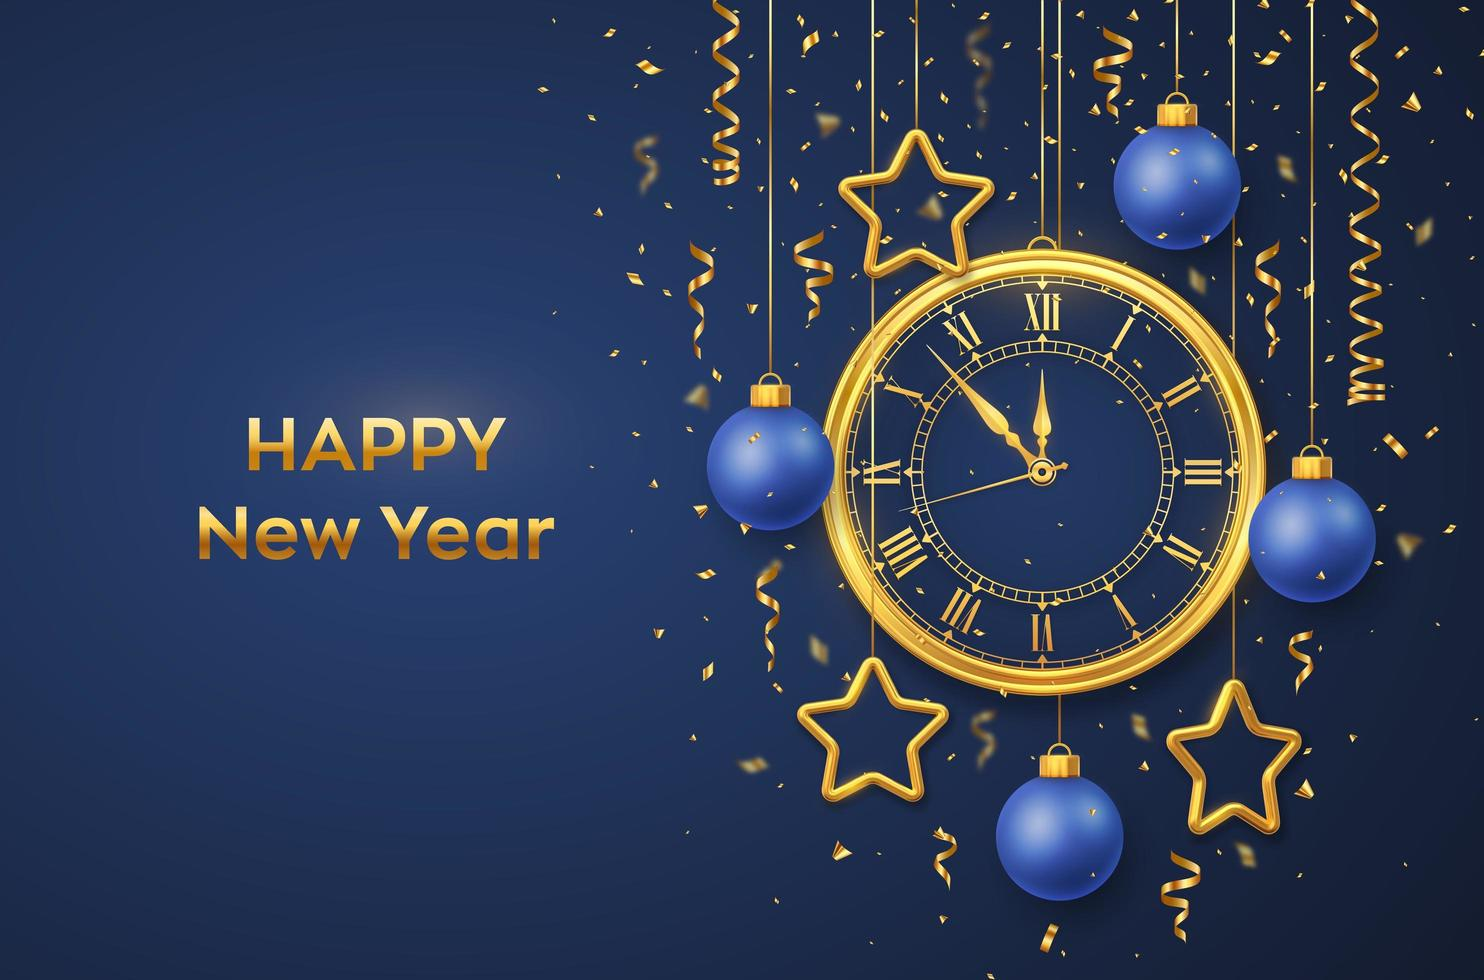 Happy New Year 2021. Golden shiny watch vector